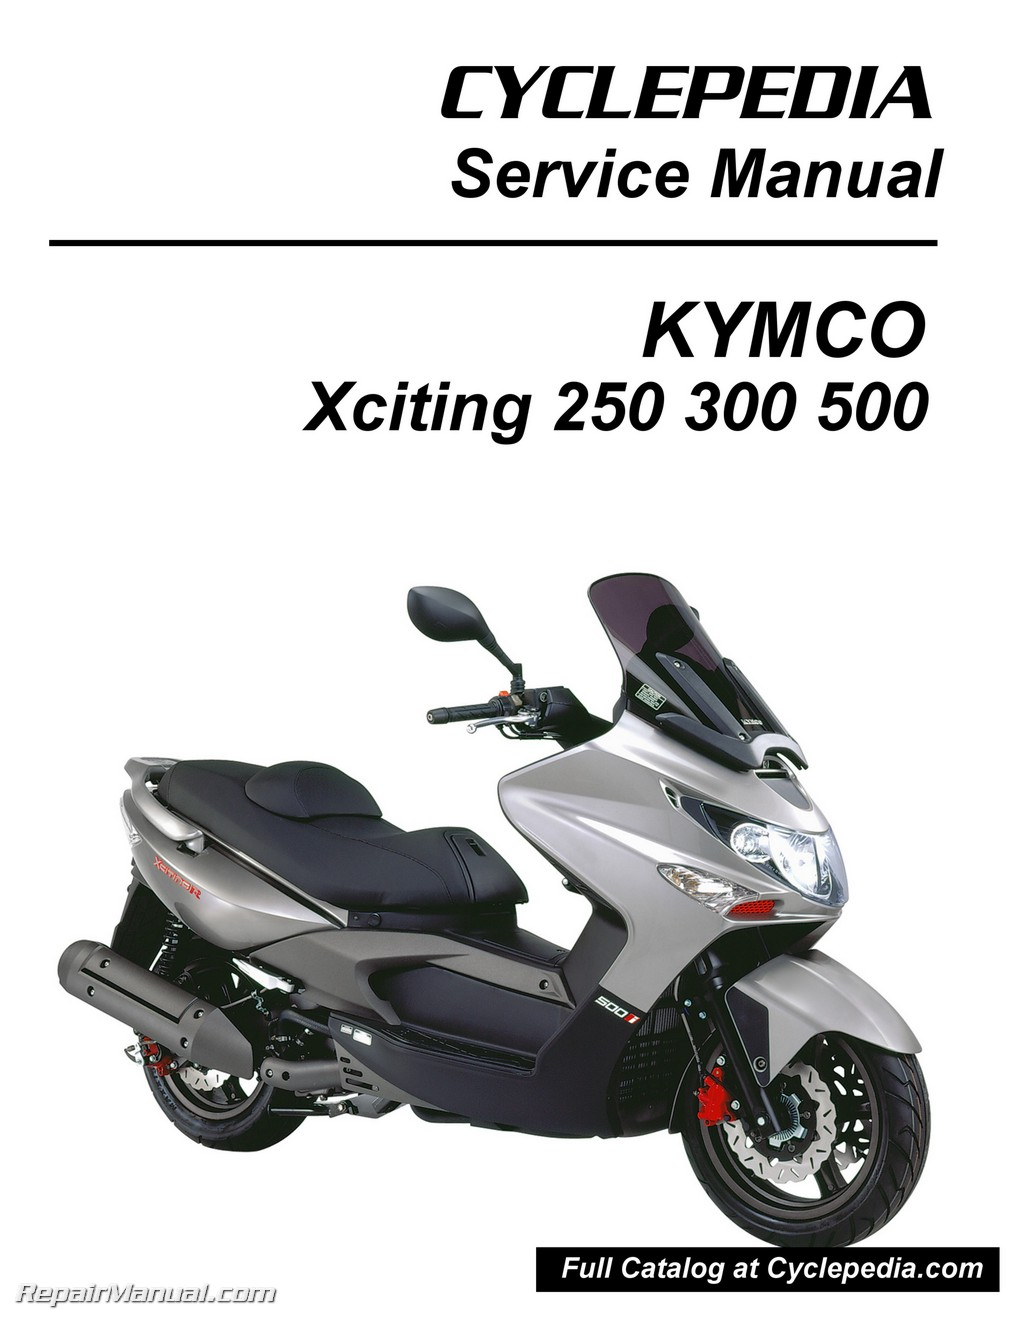 Kymco Xciting 250 300 500 Ri Scooter Service Manual